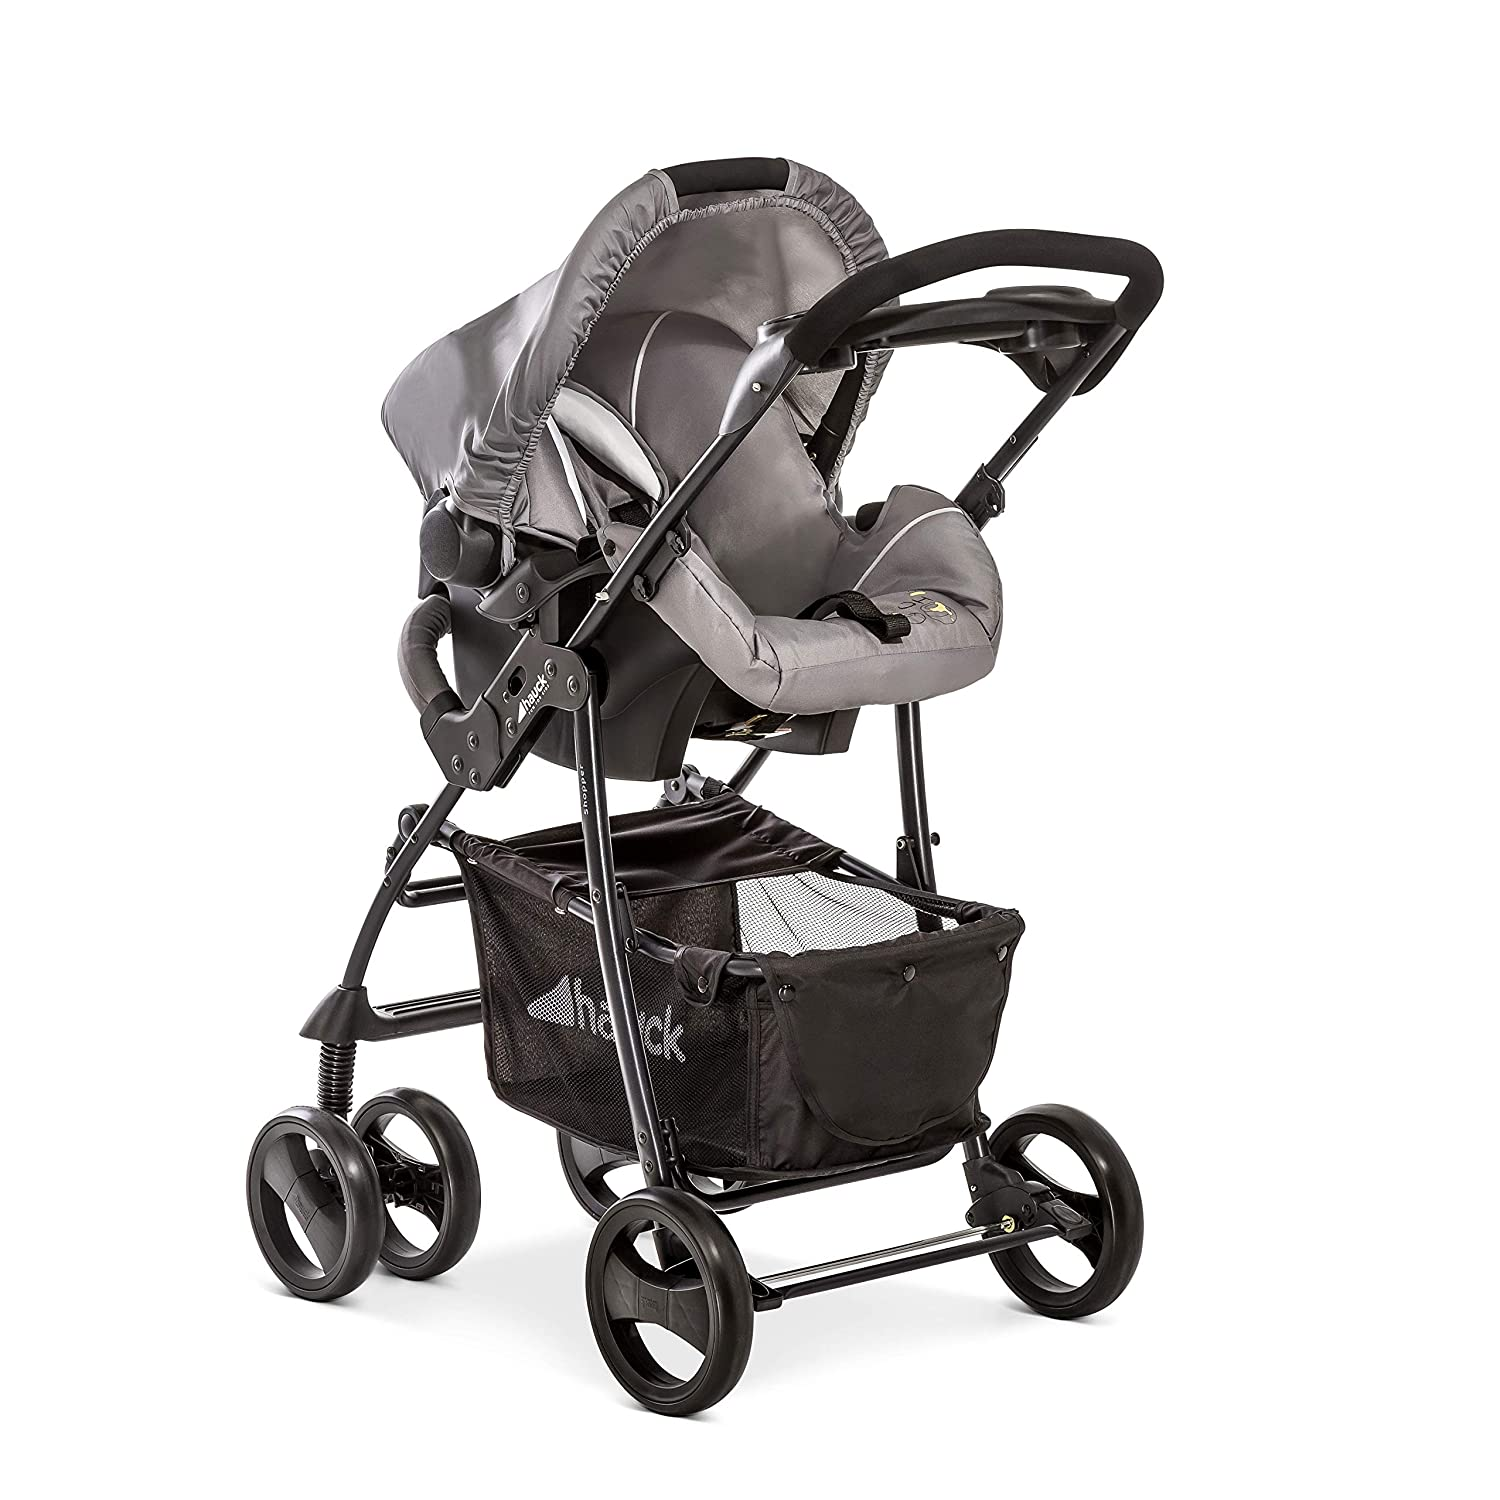 Carrycot and Pushchair Lightweight Folding Buggy up to 25 kg with Lying Position Raincover 3 in 1 Travel System with Infant Car Seat Cup Holder Pooh Cuddles Hauck Shopper SLX Trio Set